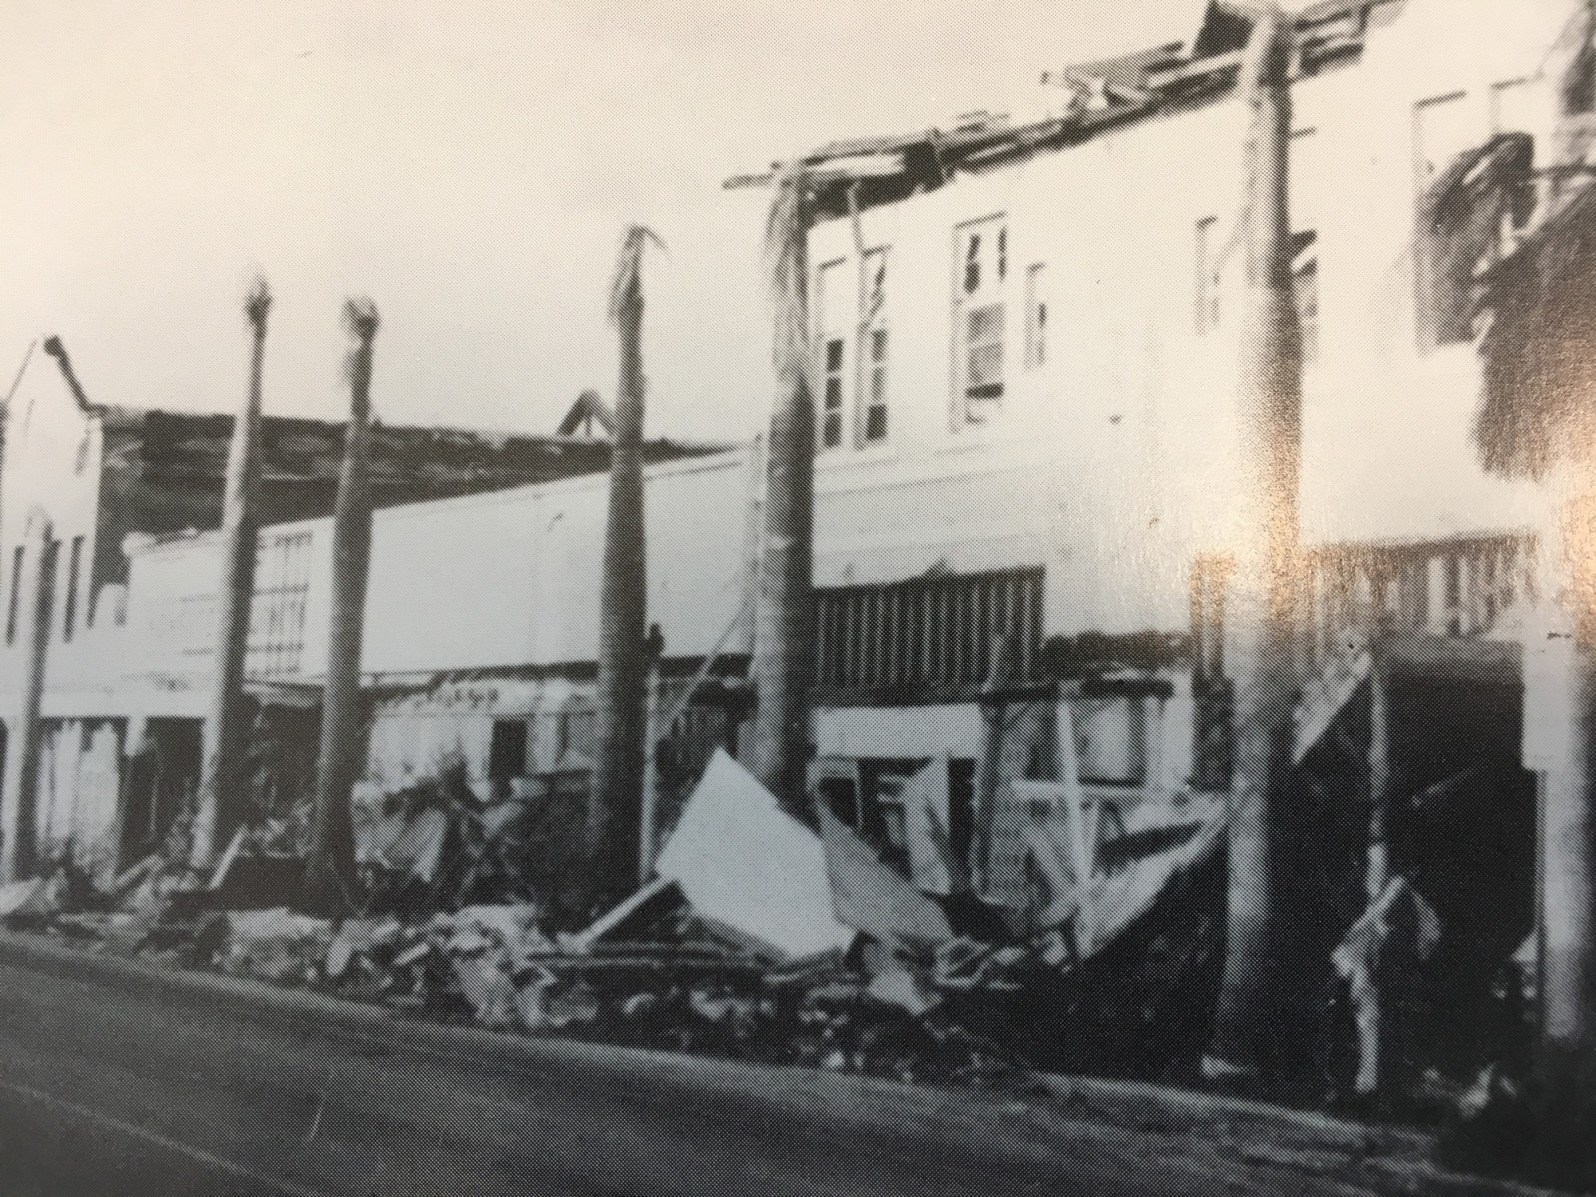 Downtown Homestead's Horne building lost it's top floor because of Hurricane Andrew (Courtesy of the Jean Taylor Collection, HistoryMiami Museum)